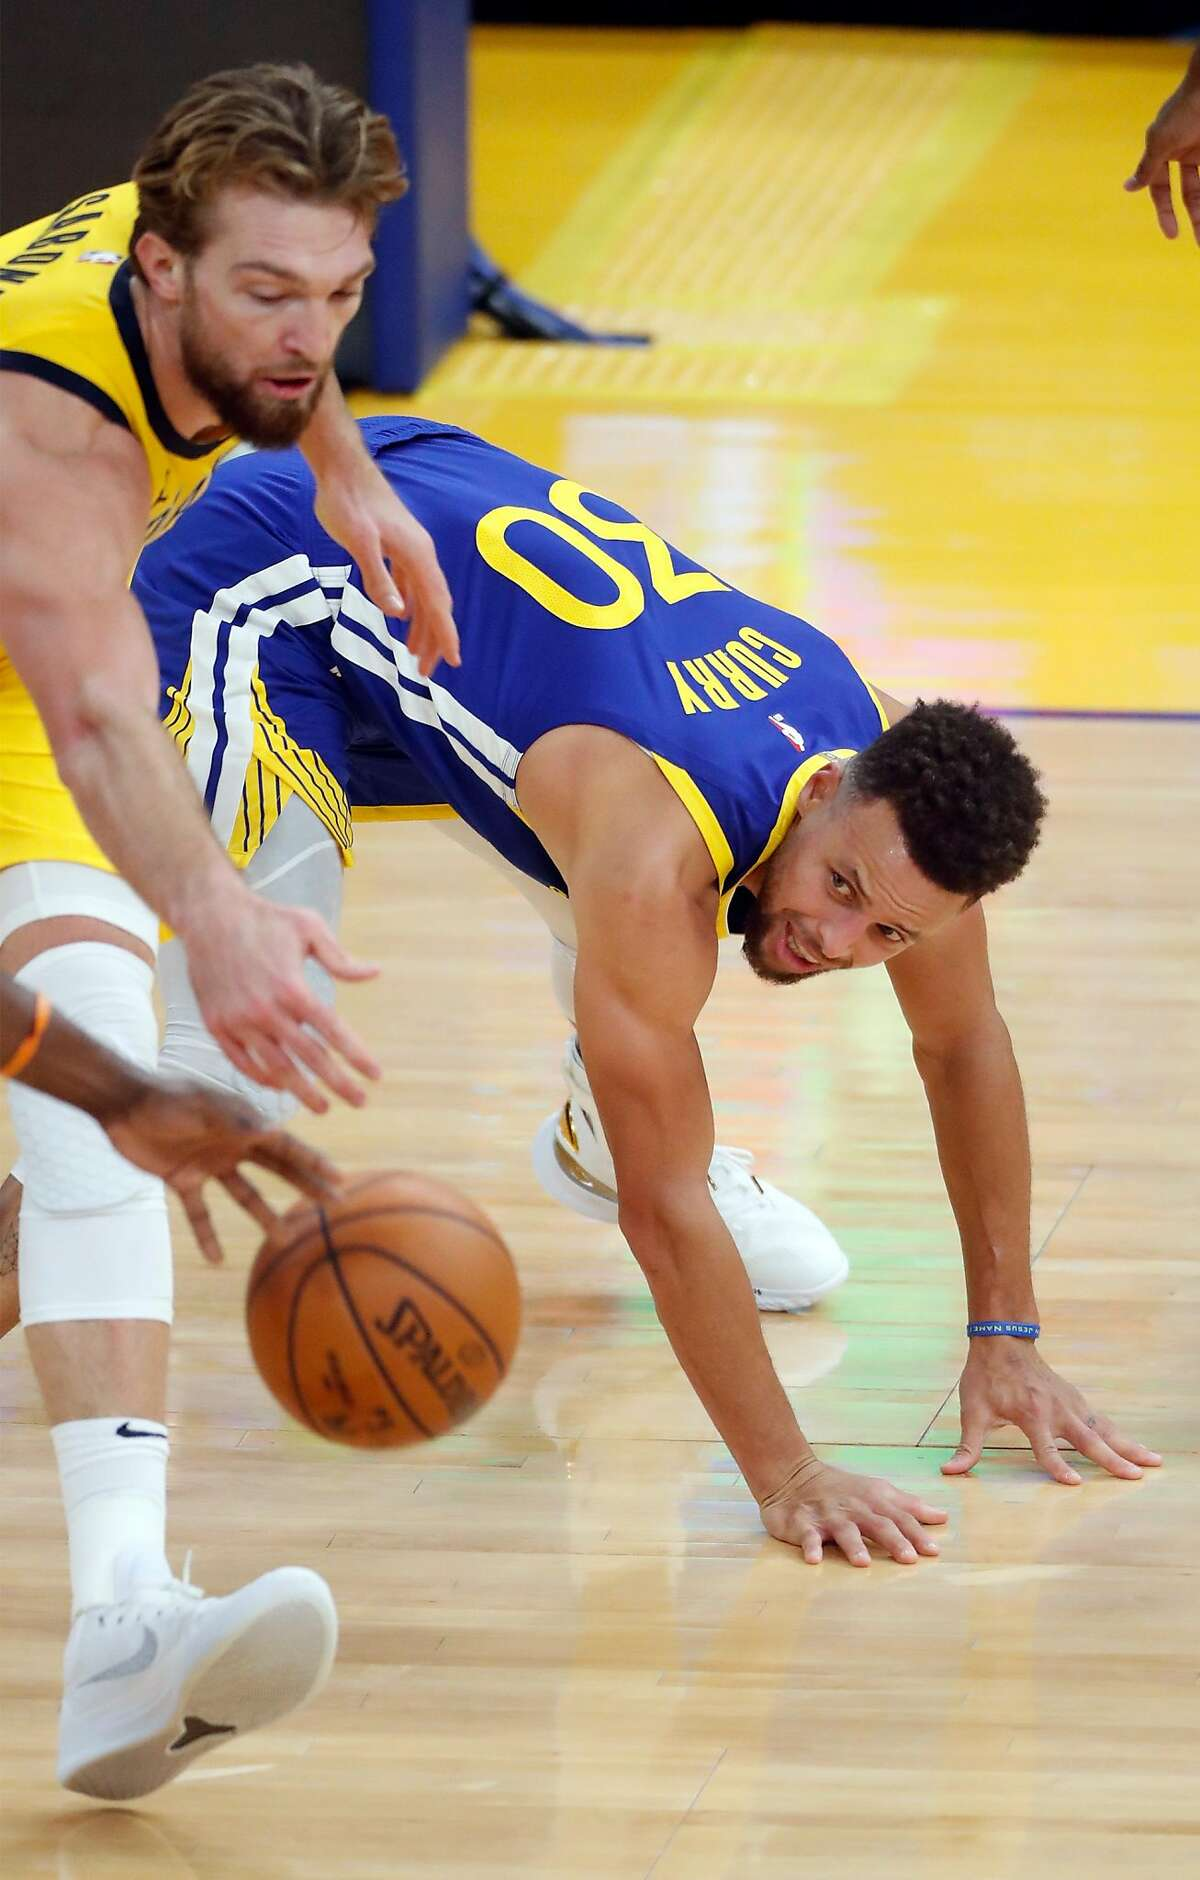 Golden State Warriors' Stephen Curry turns the ball over to Indiana Pacers' Donatas Sabonis in 3rd quarter during NBA game at Chase Center in San Francisco, Calif., on Tuesday, January 12, 2021.